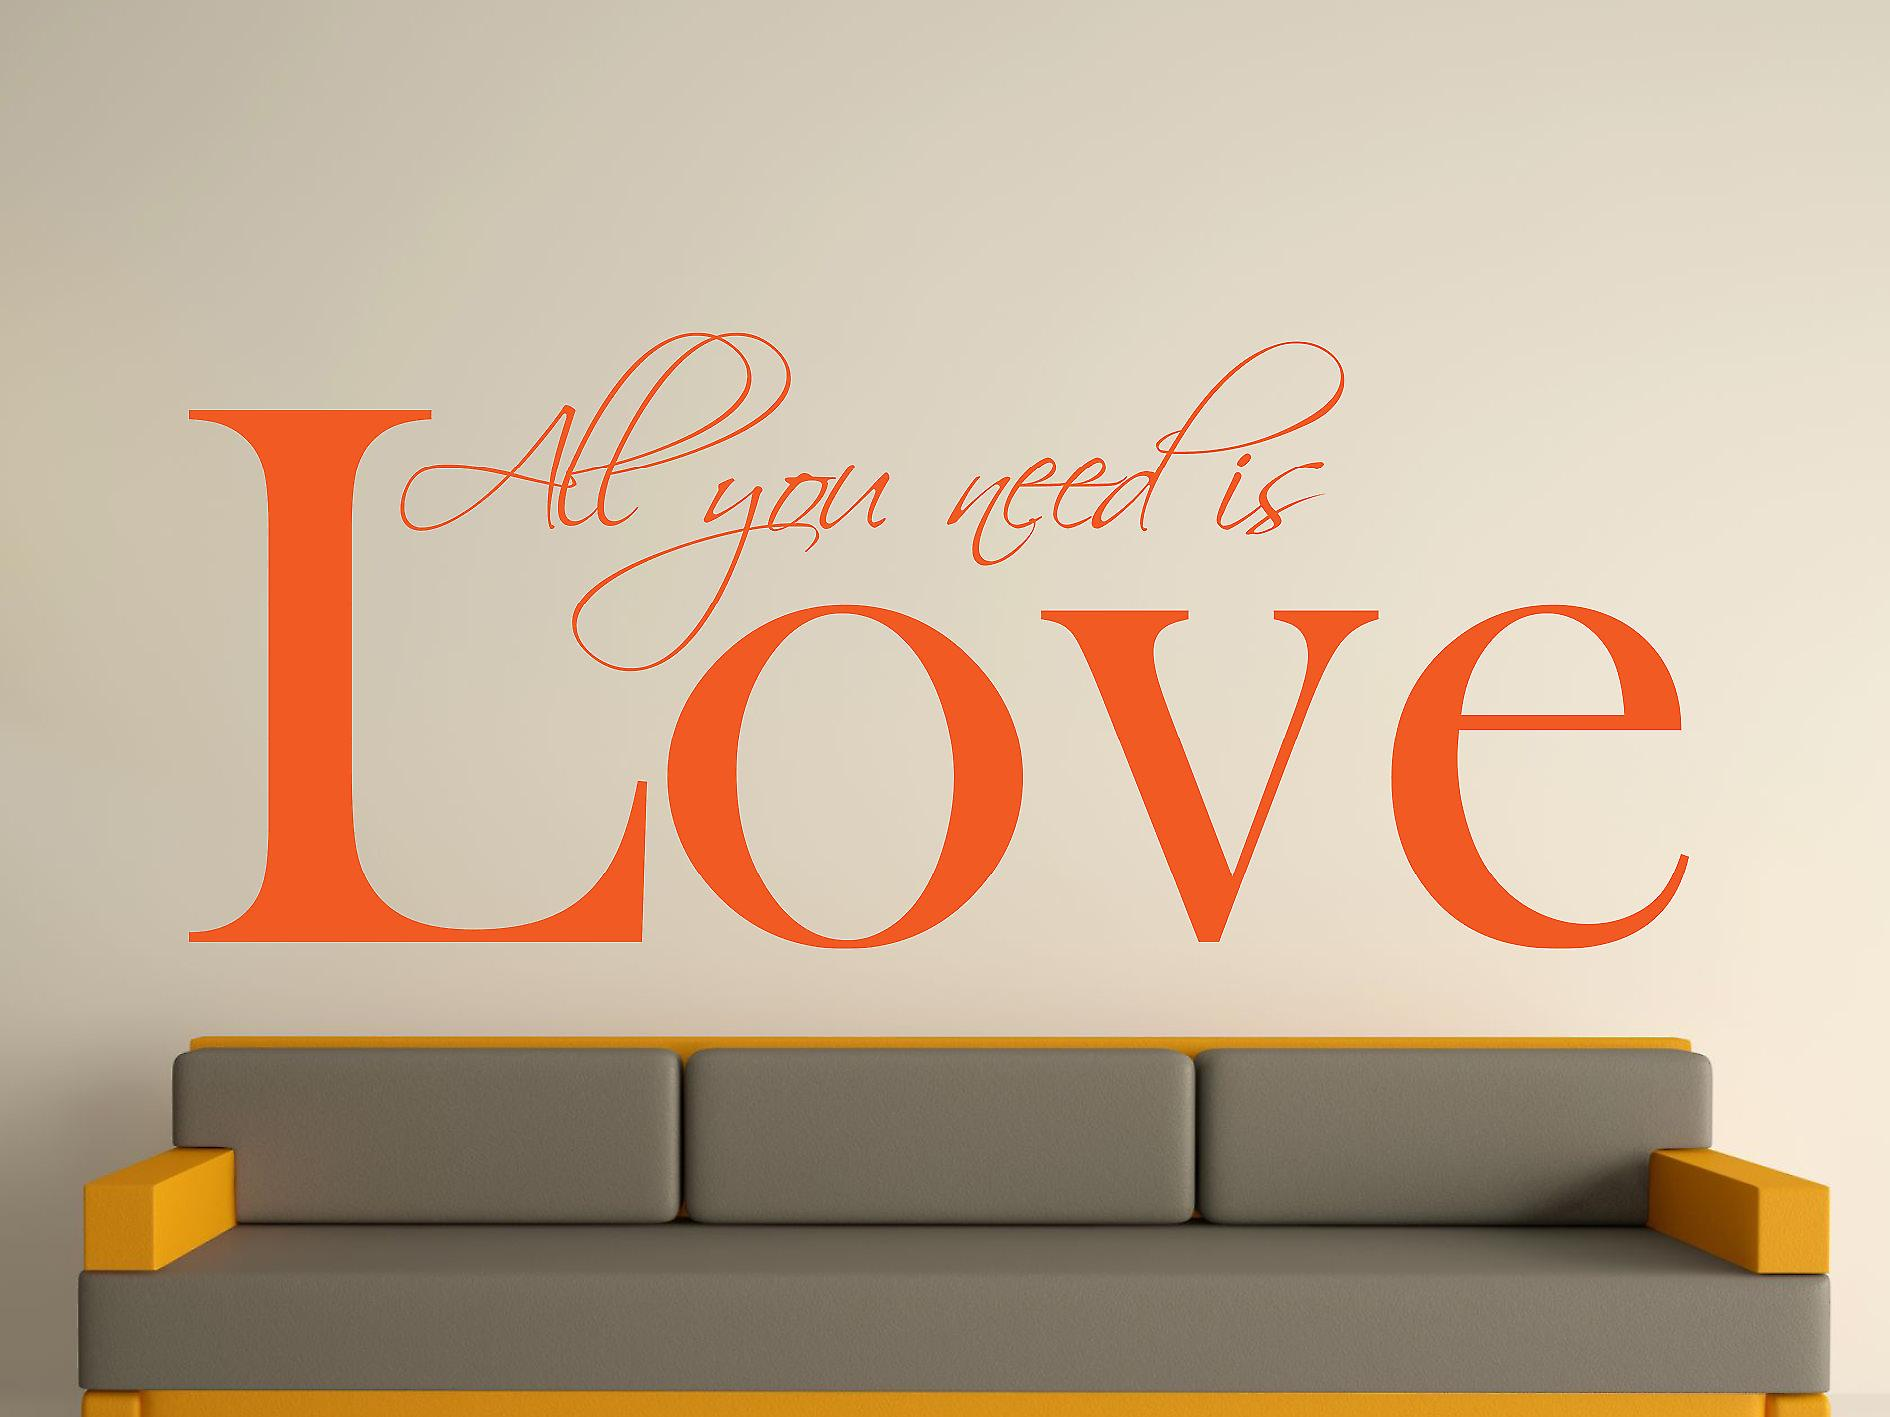 All You Need Wall Art Sticker - Orange